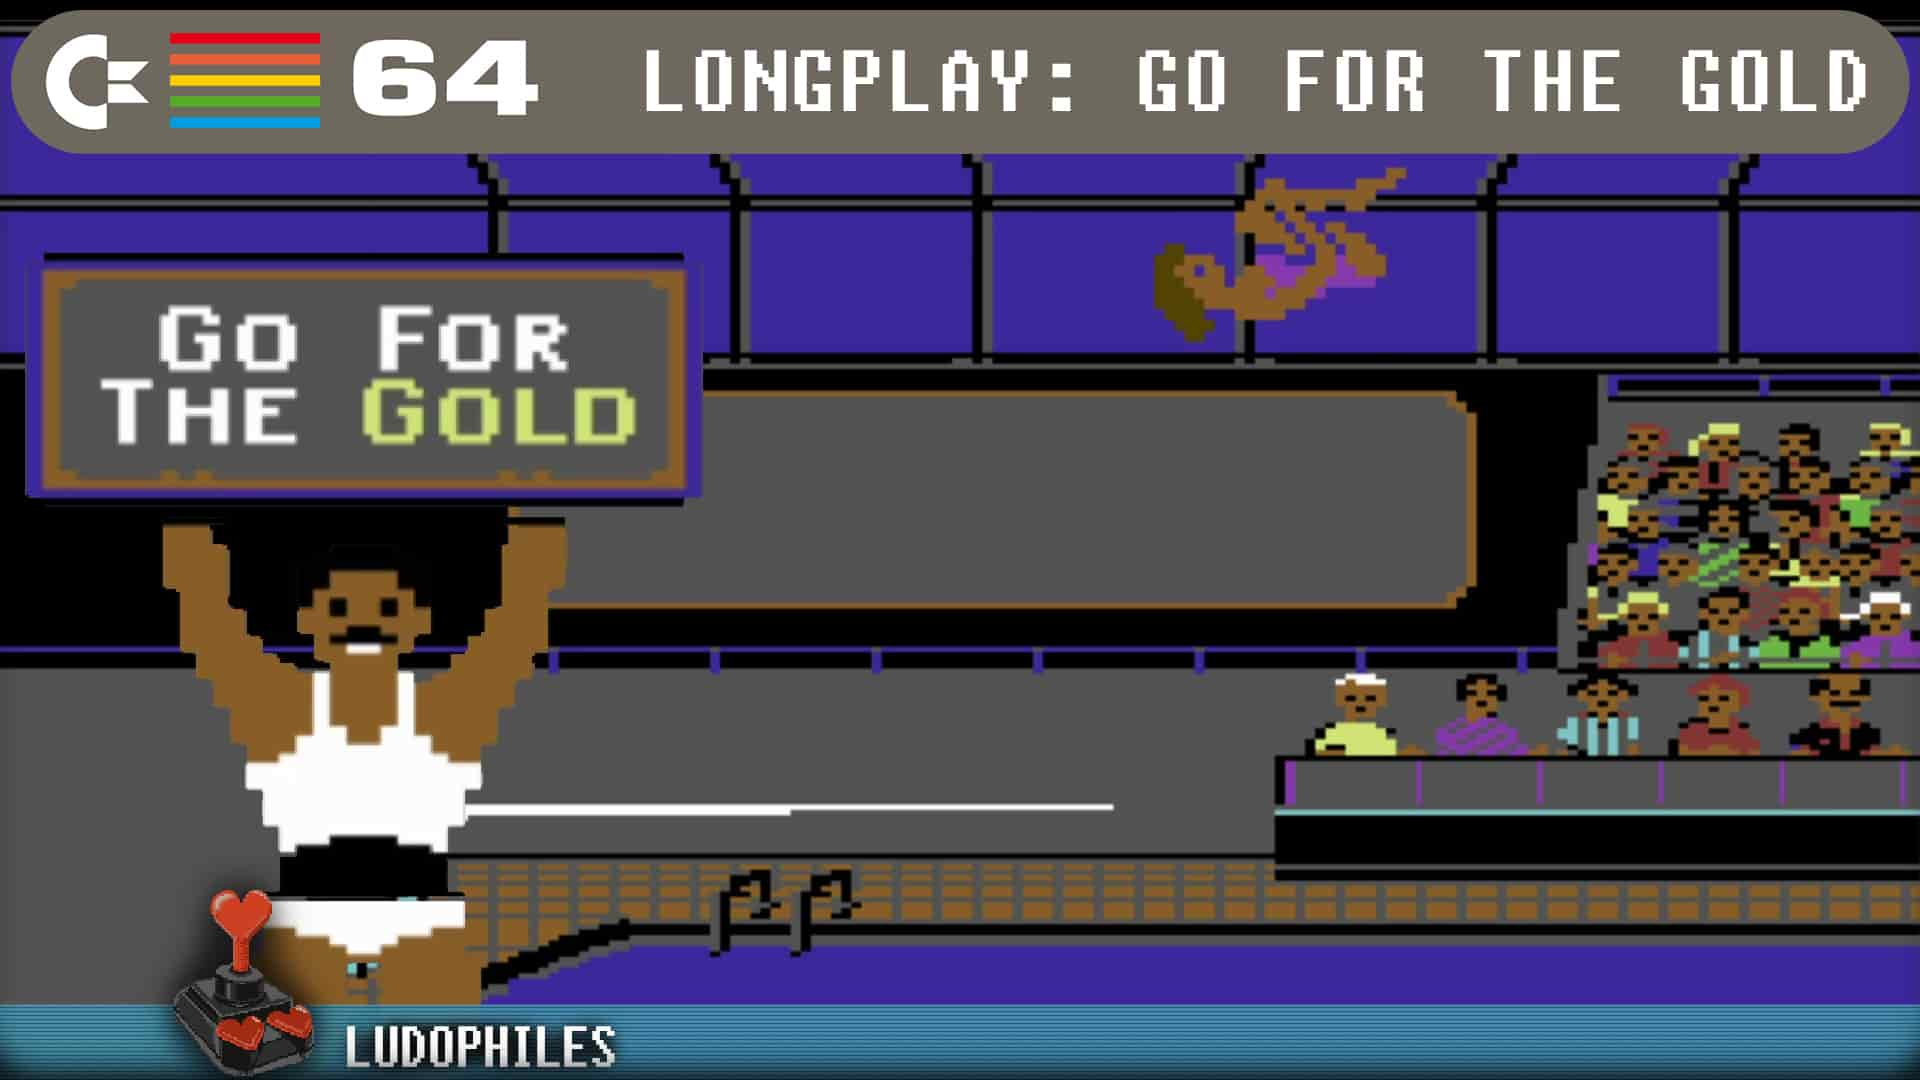 Go For The Gold C64 Longplay